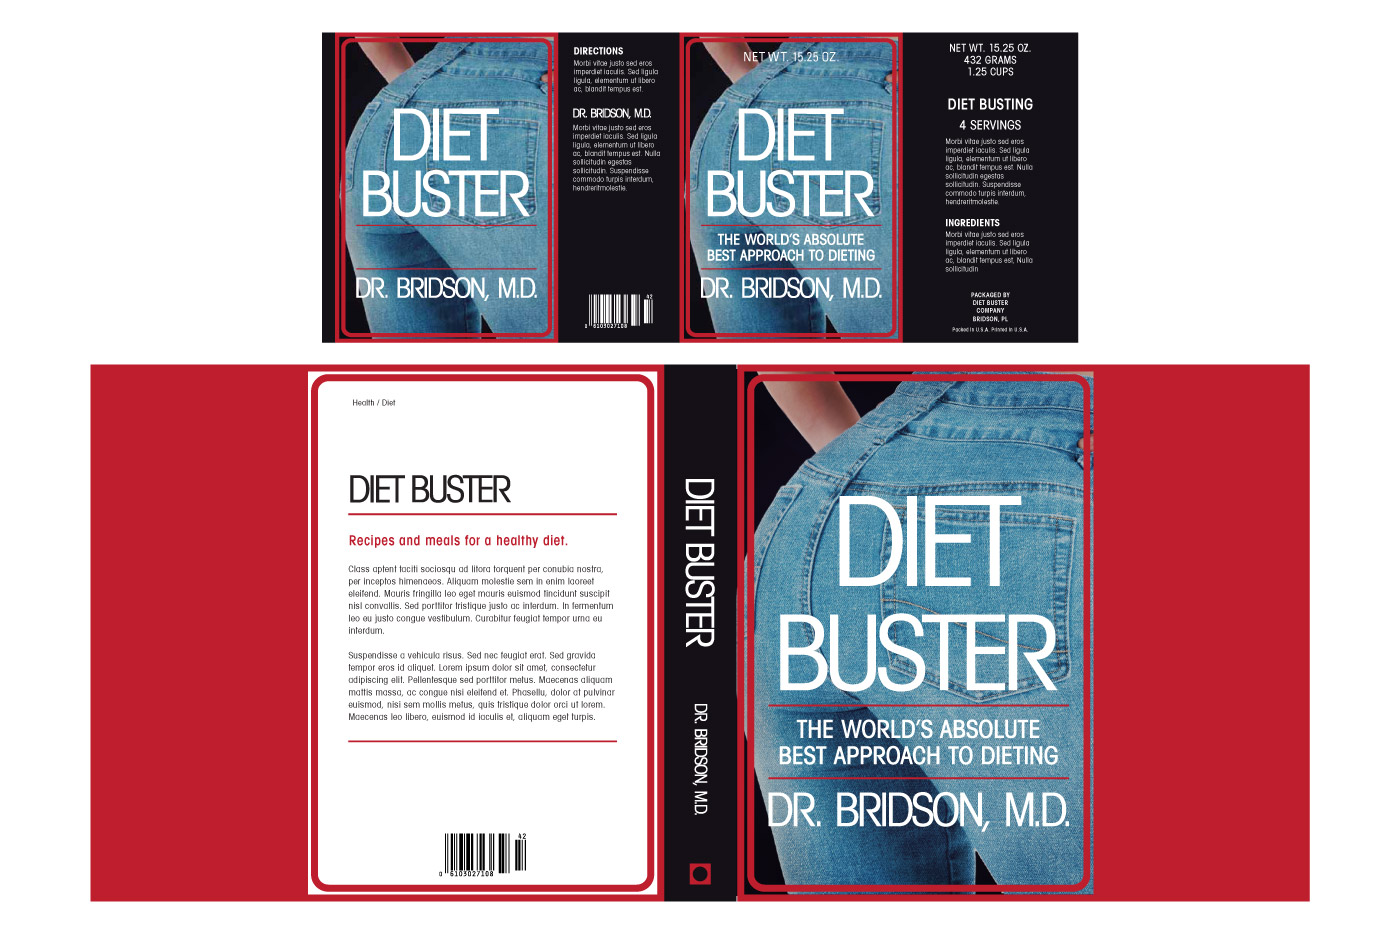 diet buster book and can graphic